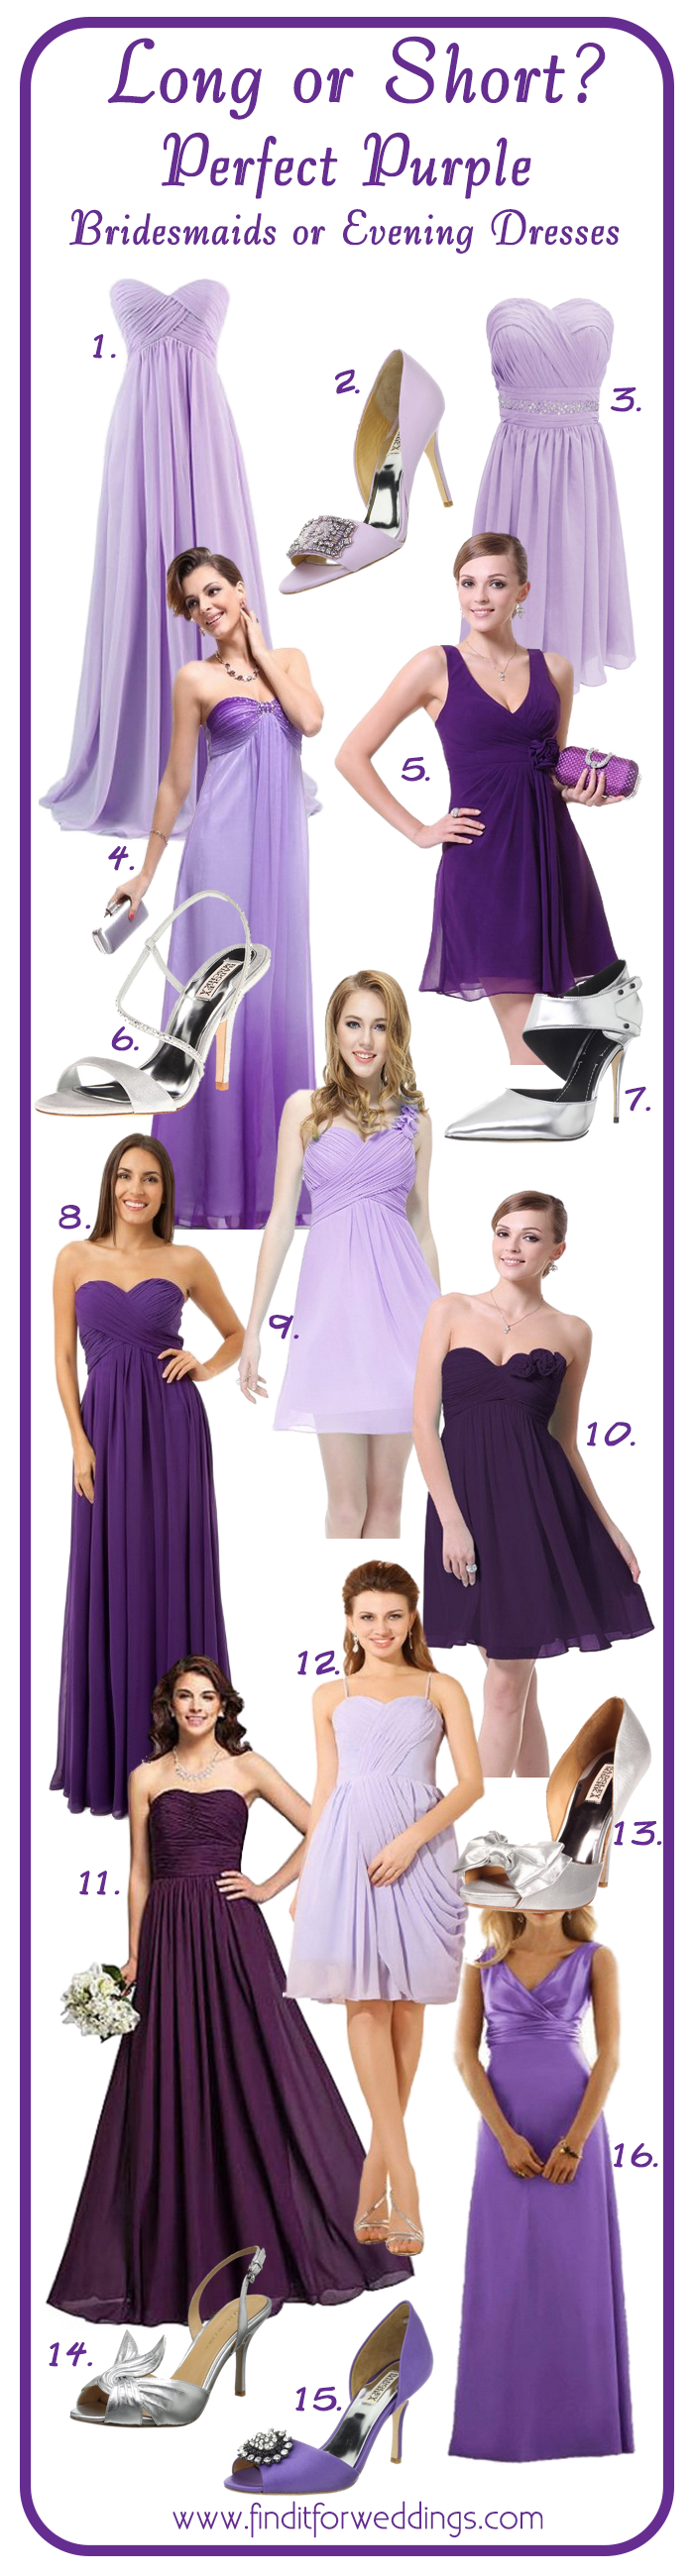 Purple Bridesmaid Dresses Wedding Shoes Find It For Weddings Purple Bridesmaid Dresses Purple Bridesmaids Wedding Bridesmaid Dresses